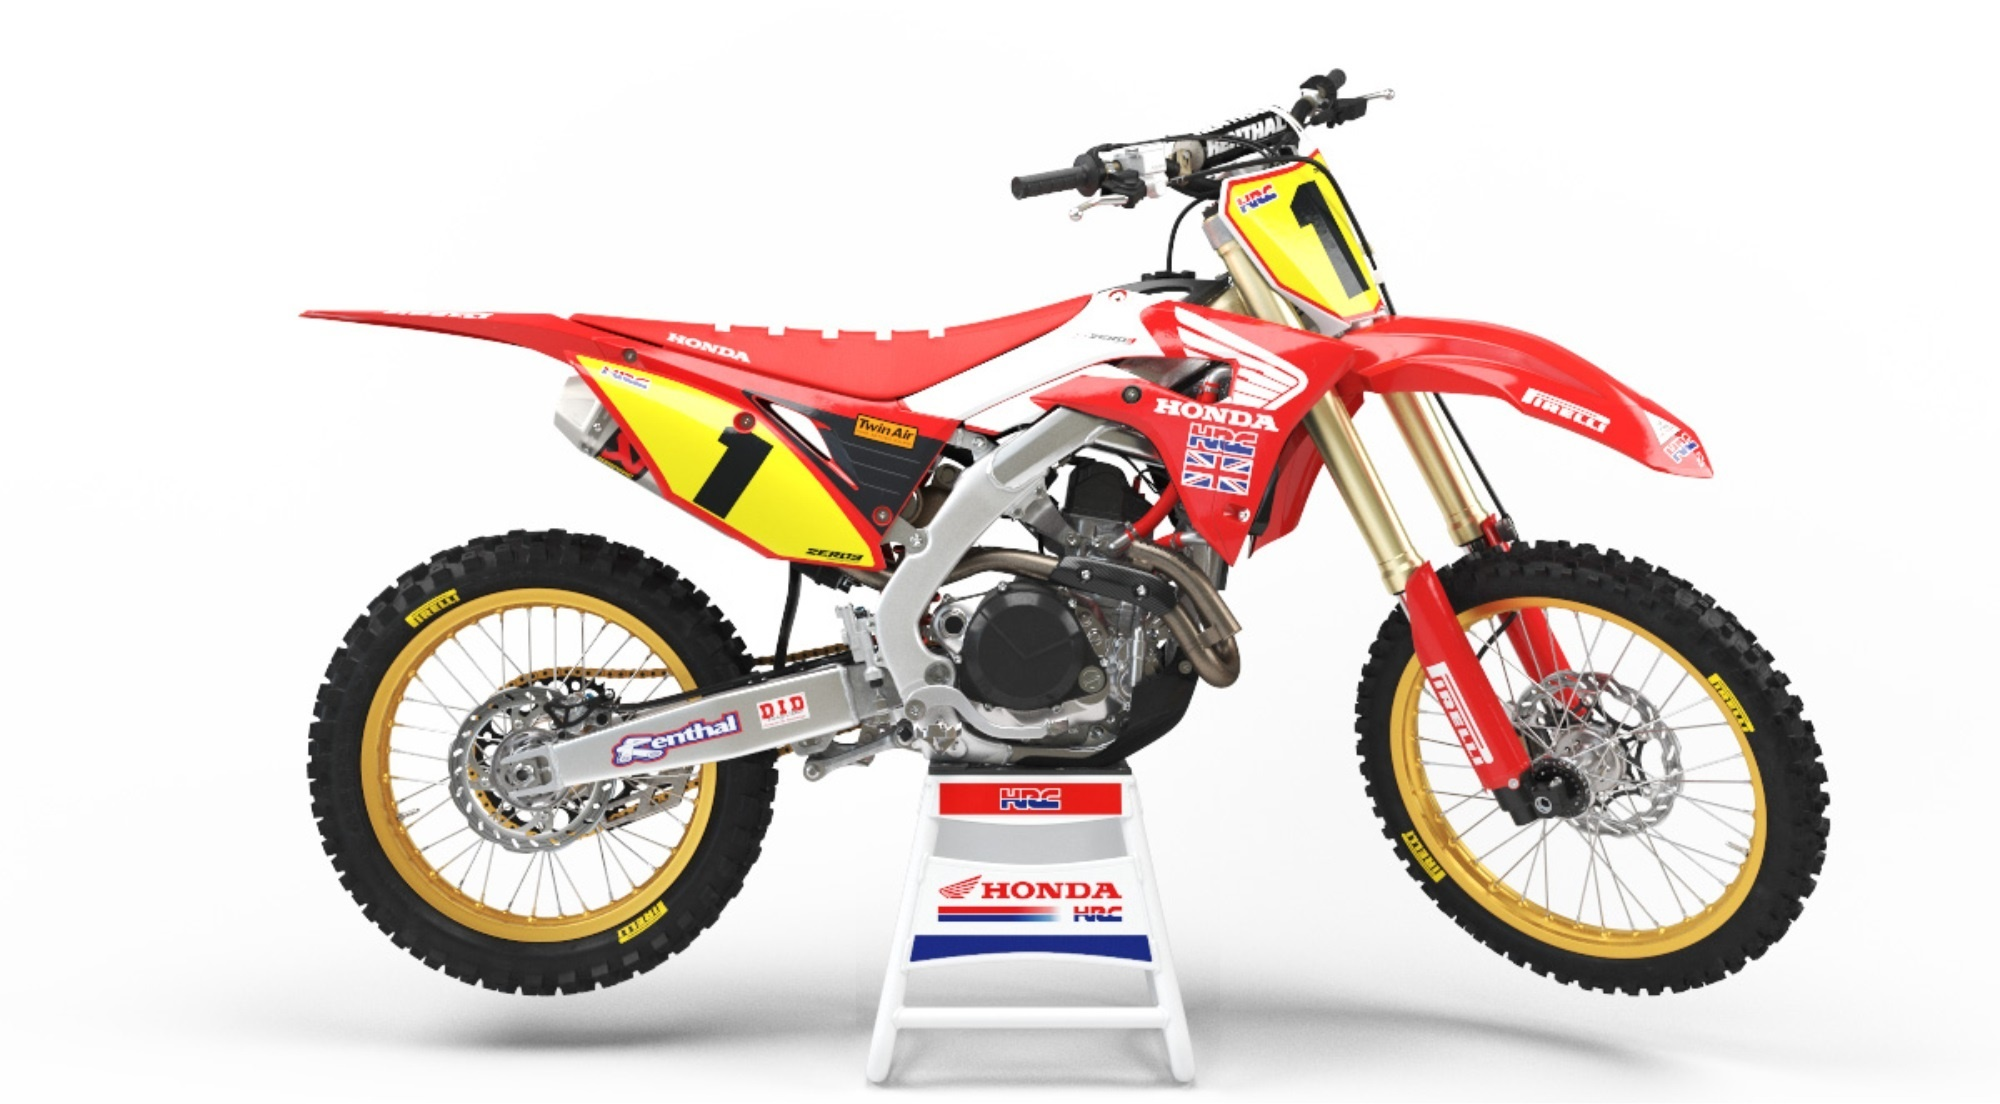 CRF250R Dave Thorpe Special Edition